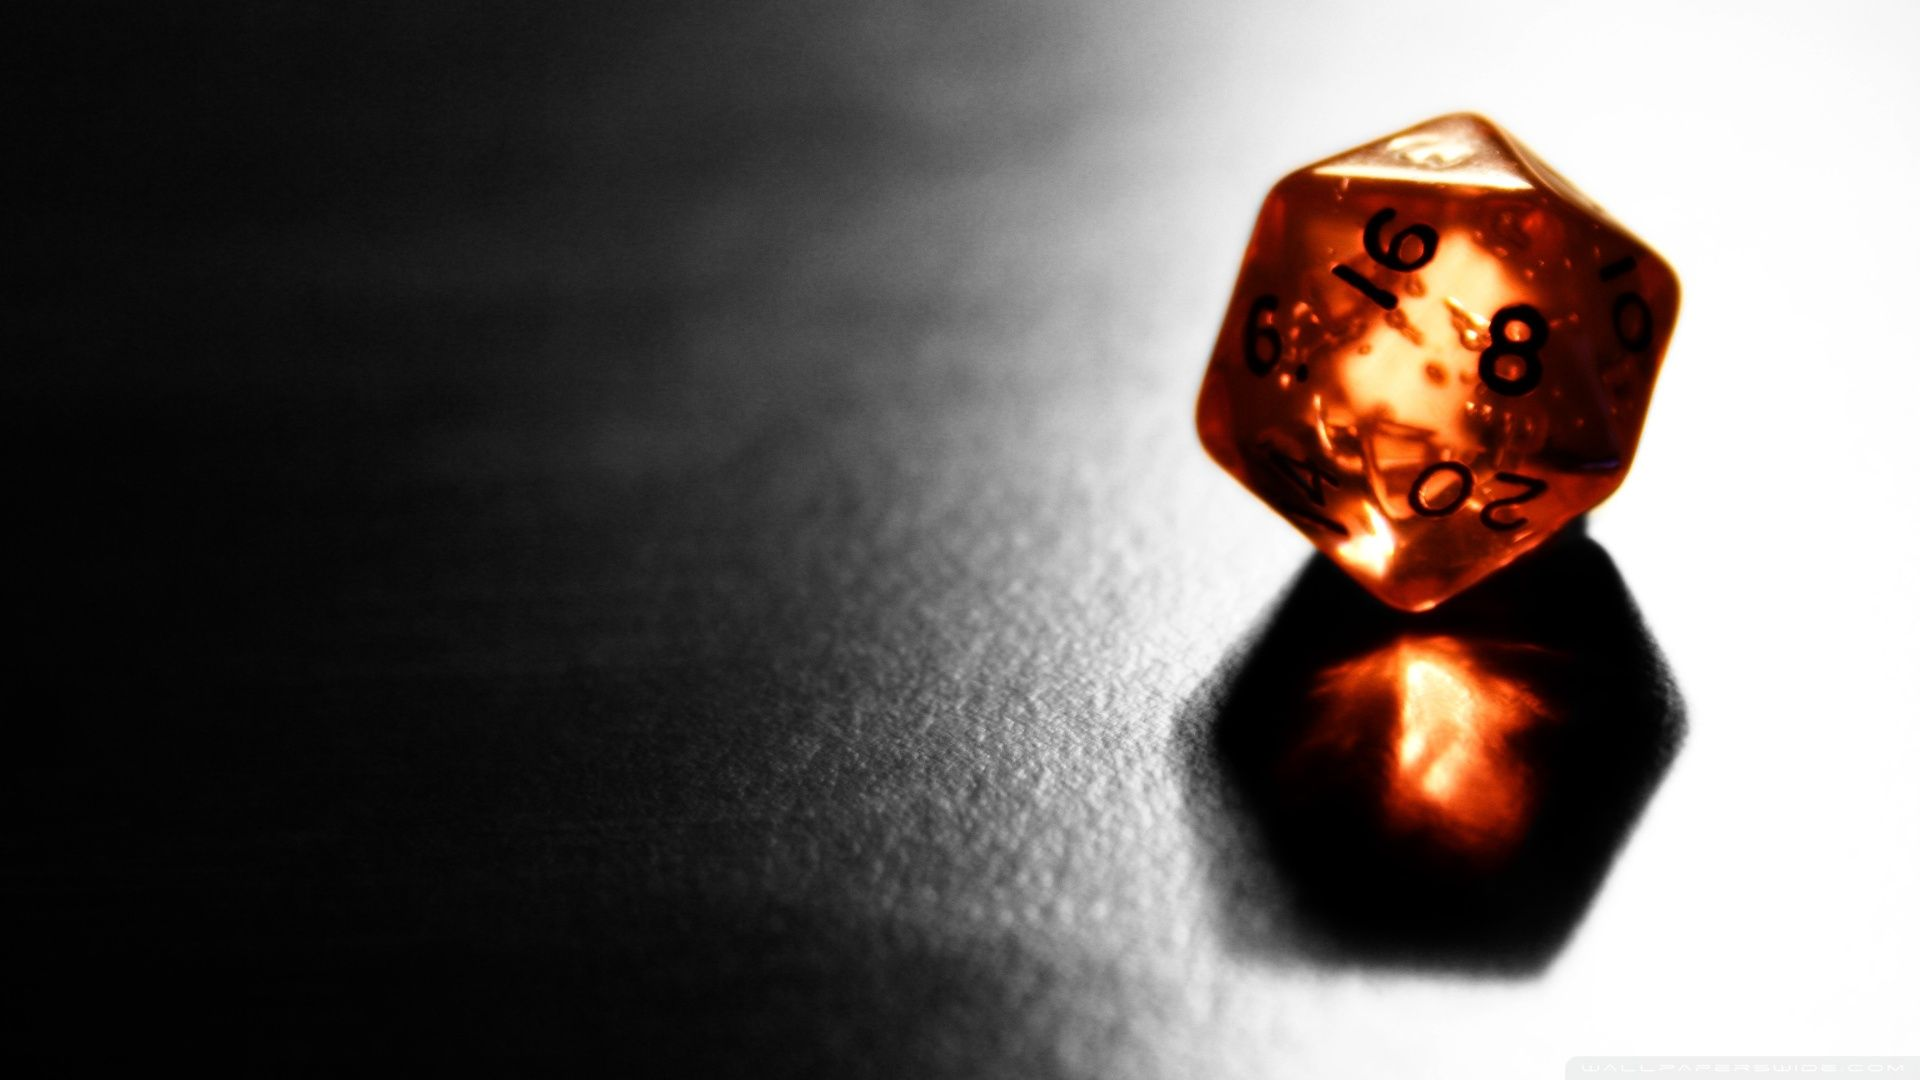 Rpg Dice Wallpaper Desktop Background For Wallpaper Hd Desktop 1920x1080 Px 324 61 Kb Dungeons And Dragons Dice Dungeons And Dragons Pen And Paper